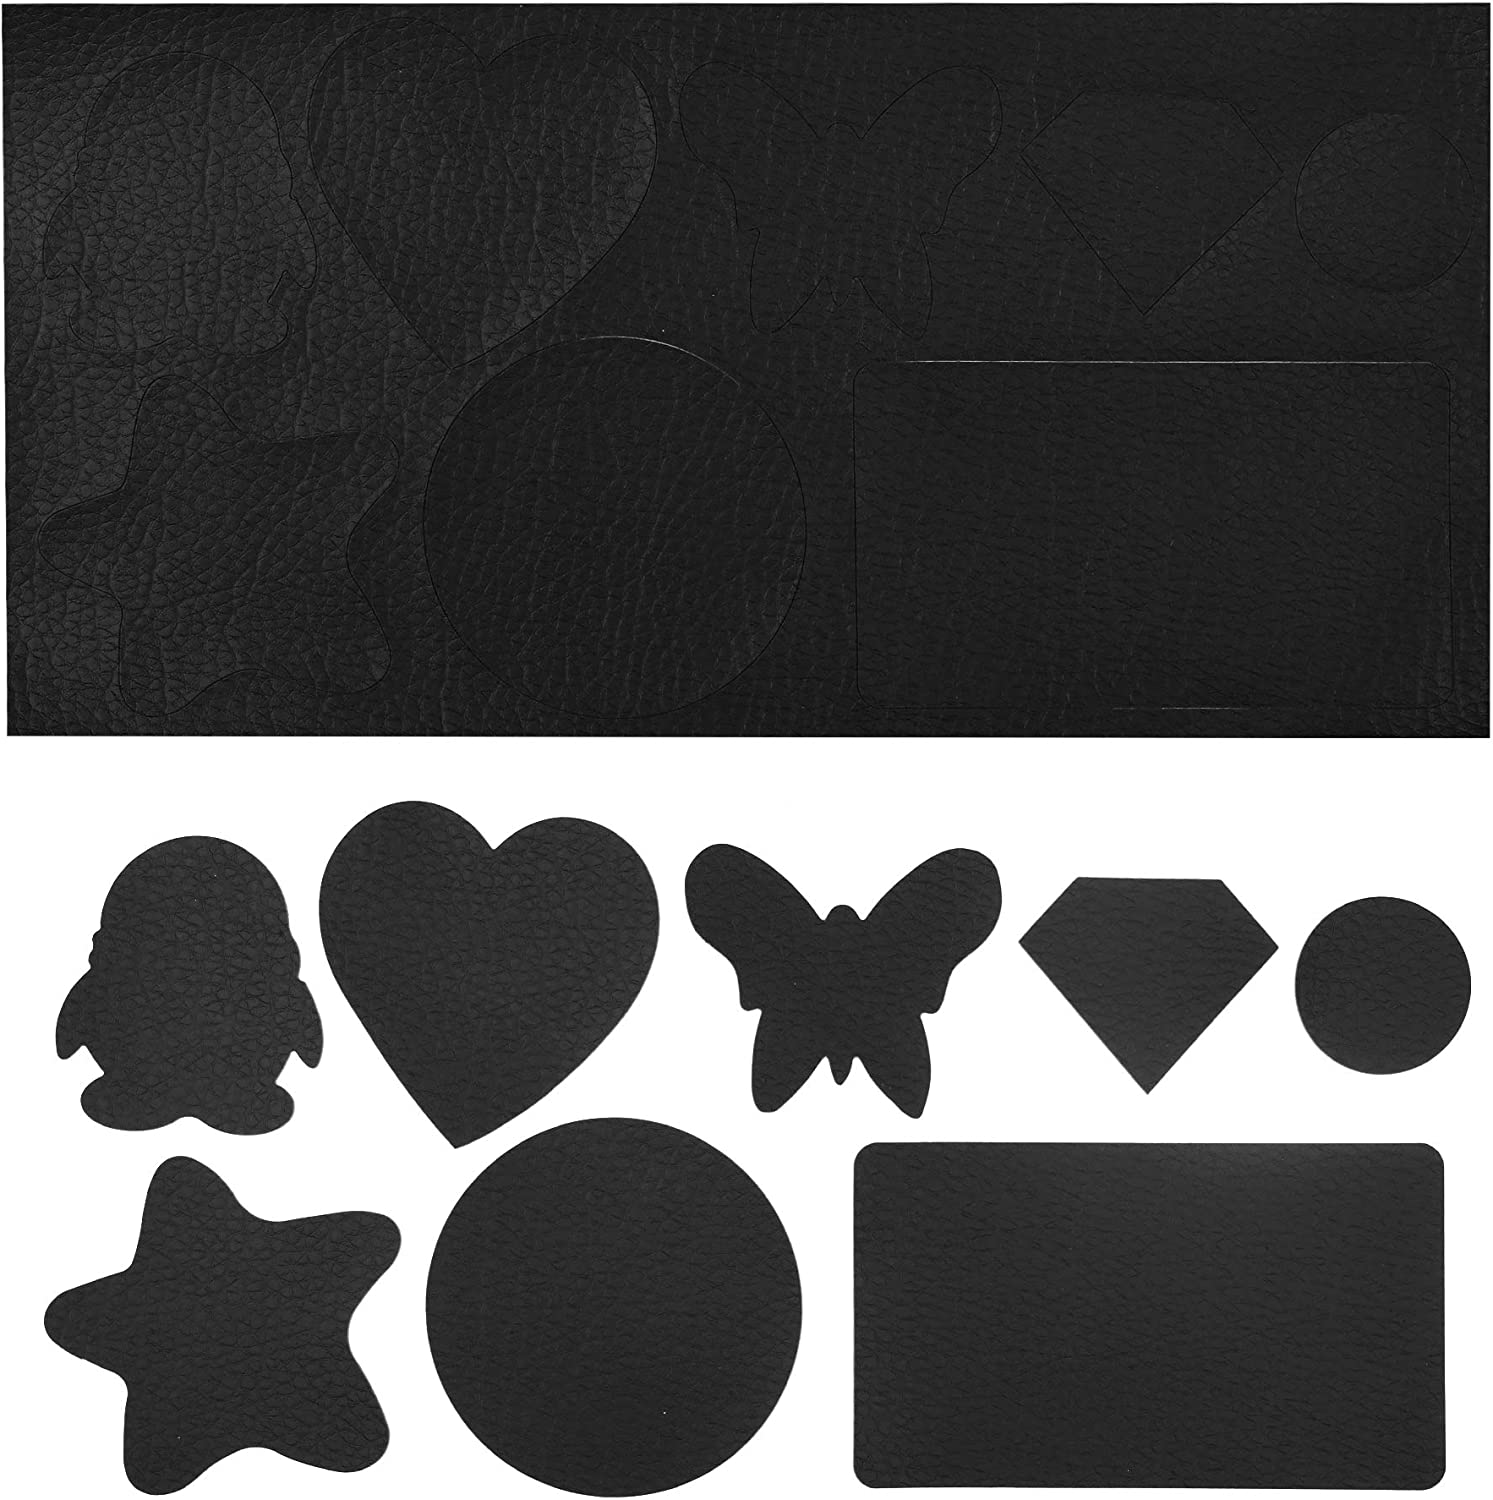 Genuine Leather Repair Patches Kit(8 Different Patterns)-Self Adhesive Leather to Repair Furniture, Couch, Sofa, Jacket - Multiple Shapes Available,Wide Uses, Safe Odorless, Fast Drying (Black)